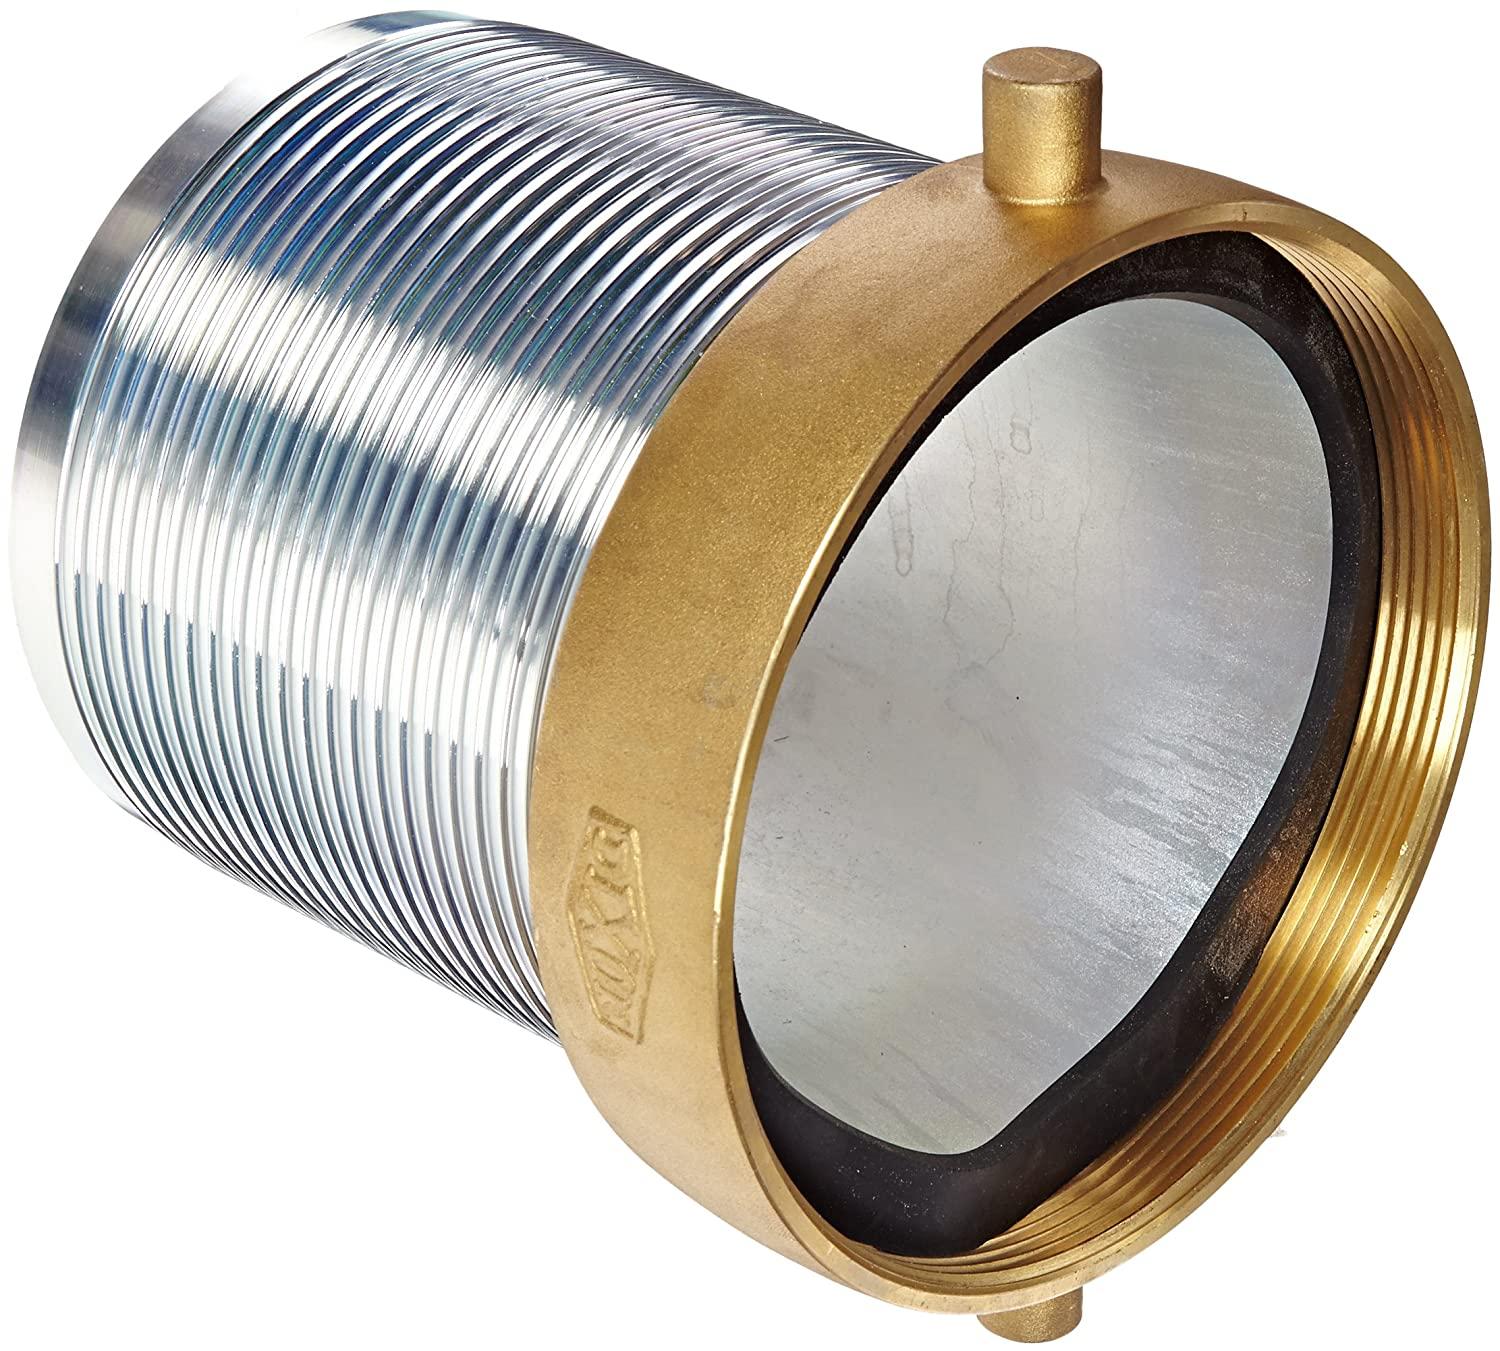 Dixon Valve FCSB600 Steel Shank/Water Fitting, King Short Shank Suction Coupling with Brass Nut, 6